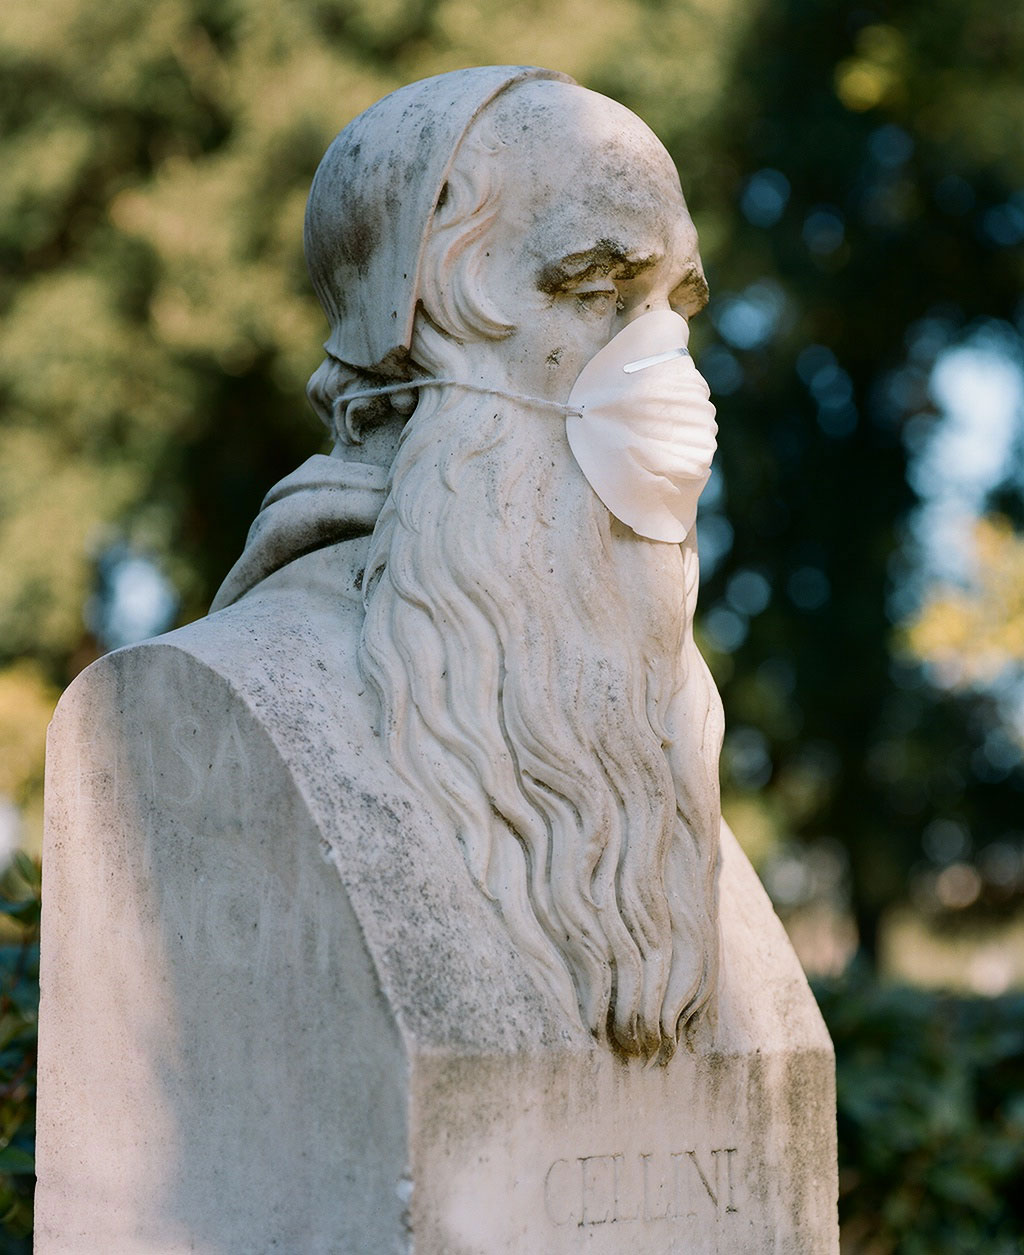 Bust of sculptor and goldsmith Benvenuto Cellini (1500-71) at Villa Borghese gardens, Rome. Photo © Federico Pestilli.